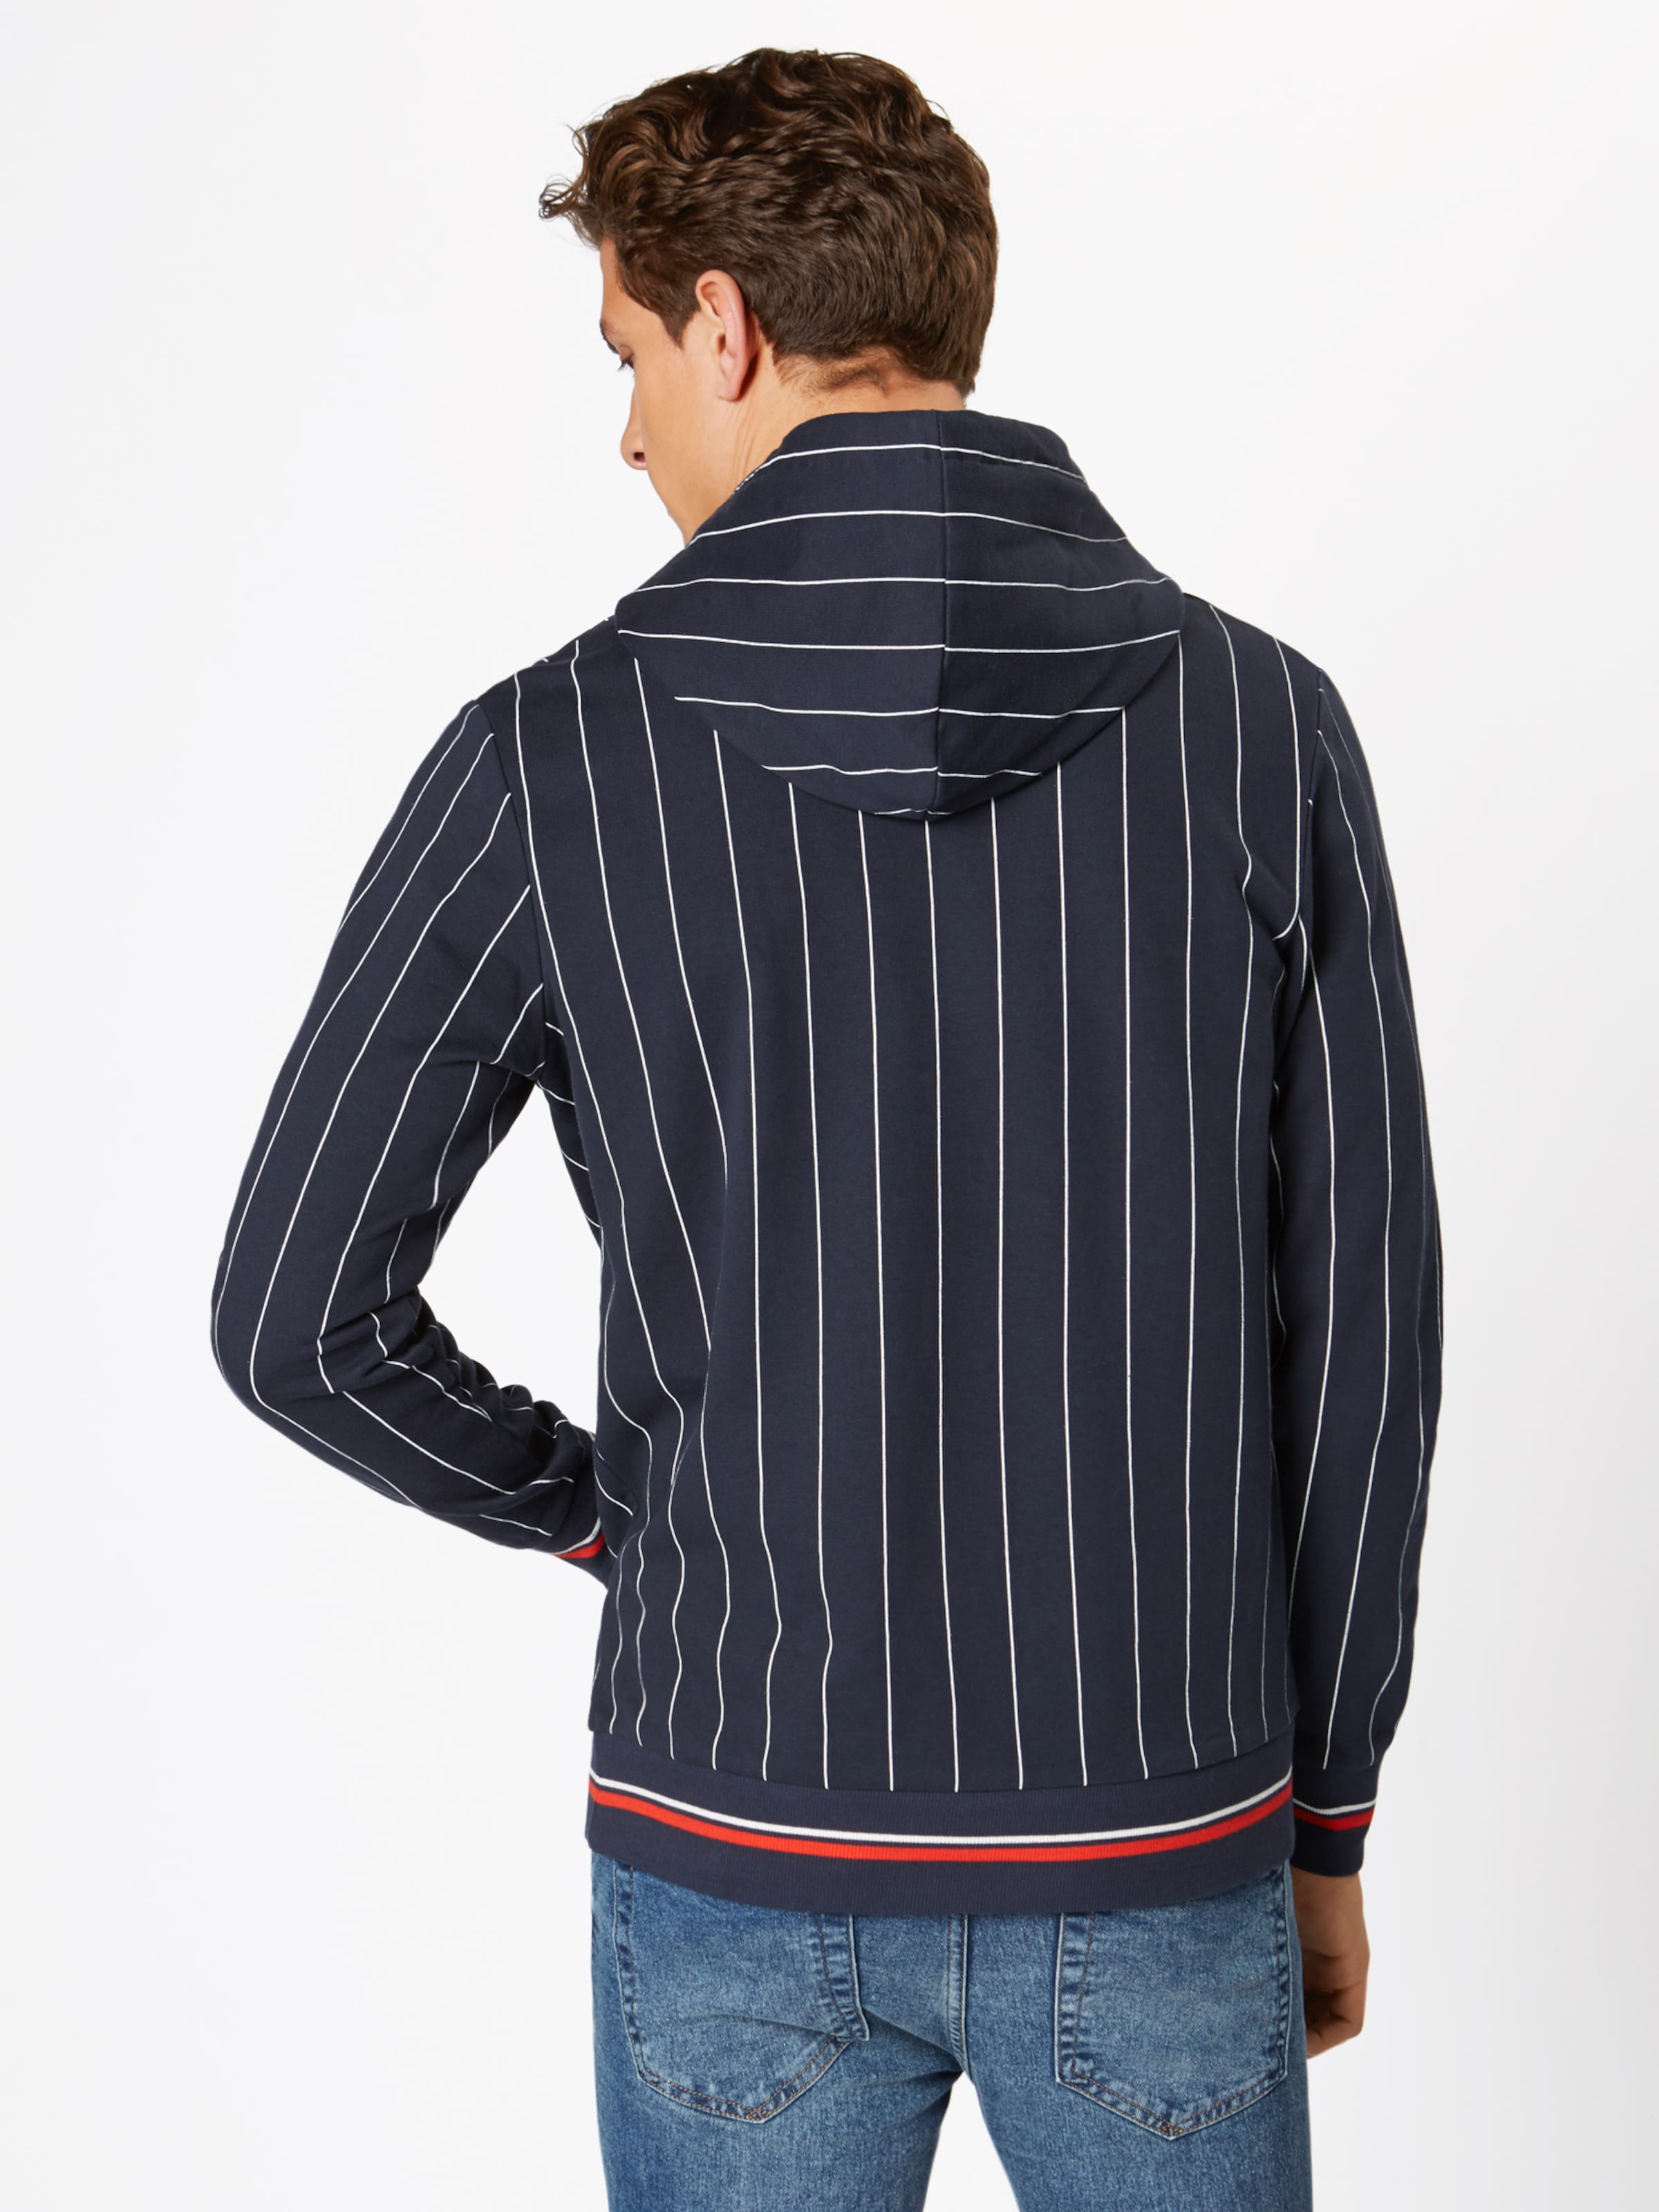 Jackamp; En Sweat shirt FoncéBlanc Bleu Jones 'pinstripe' QxoeWrCBd